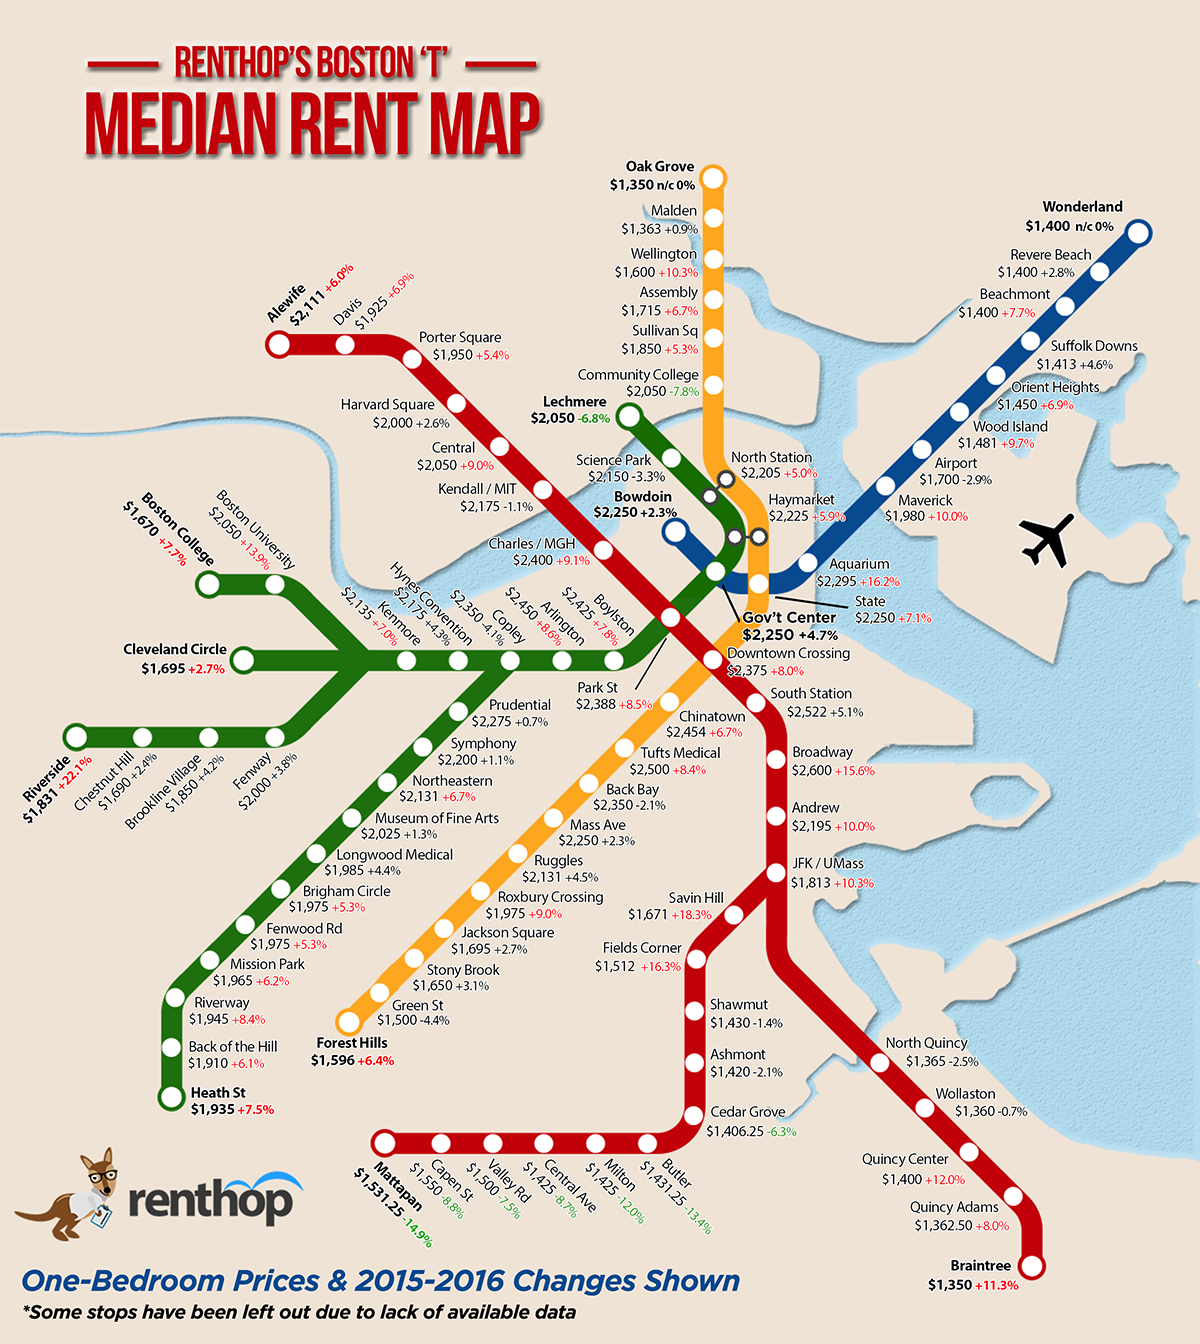 One Bedroom Rent Mbta Map Shows Huge Differences Boston